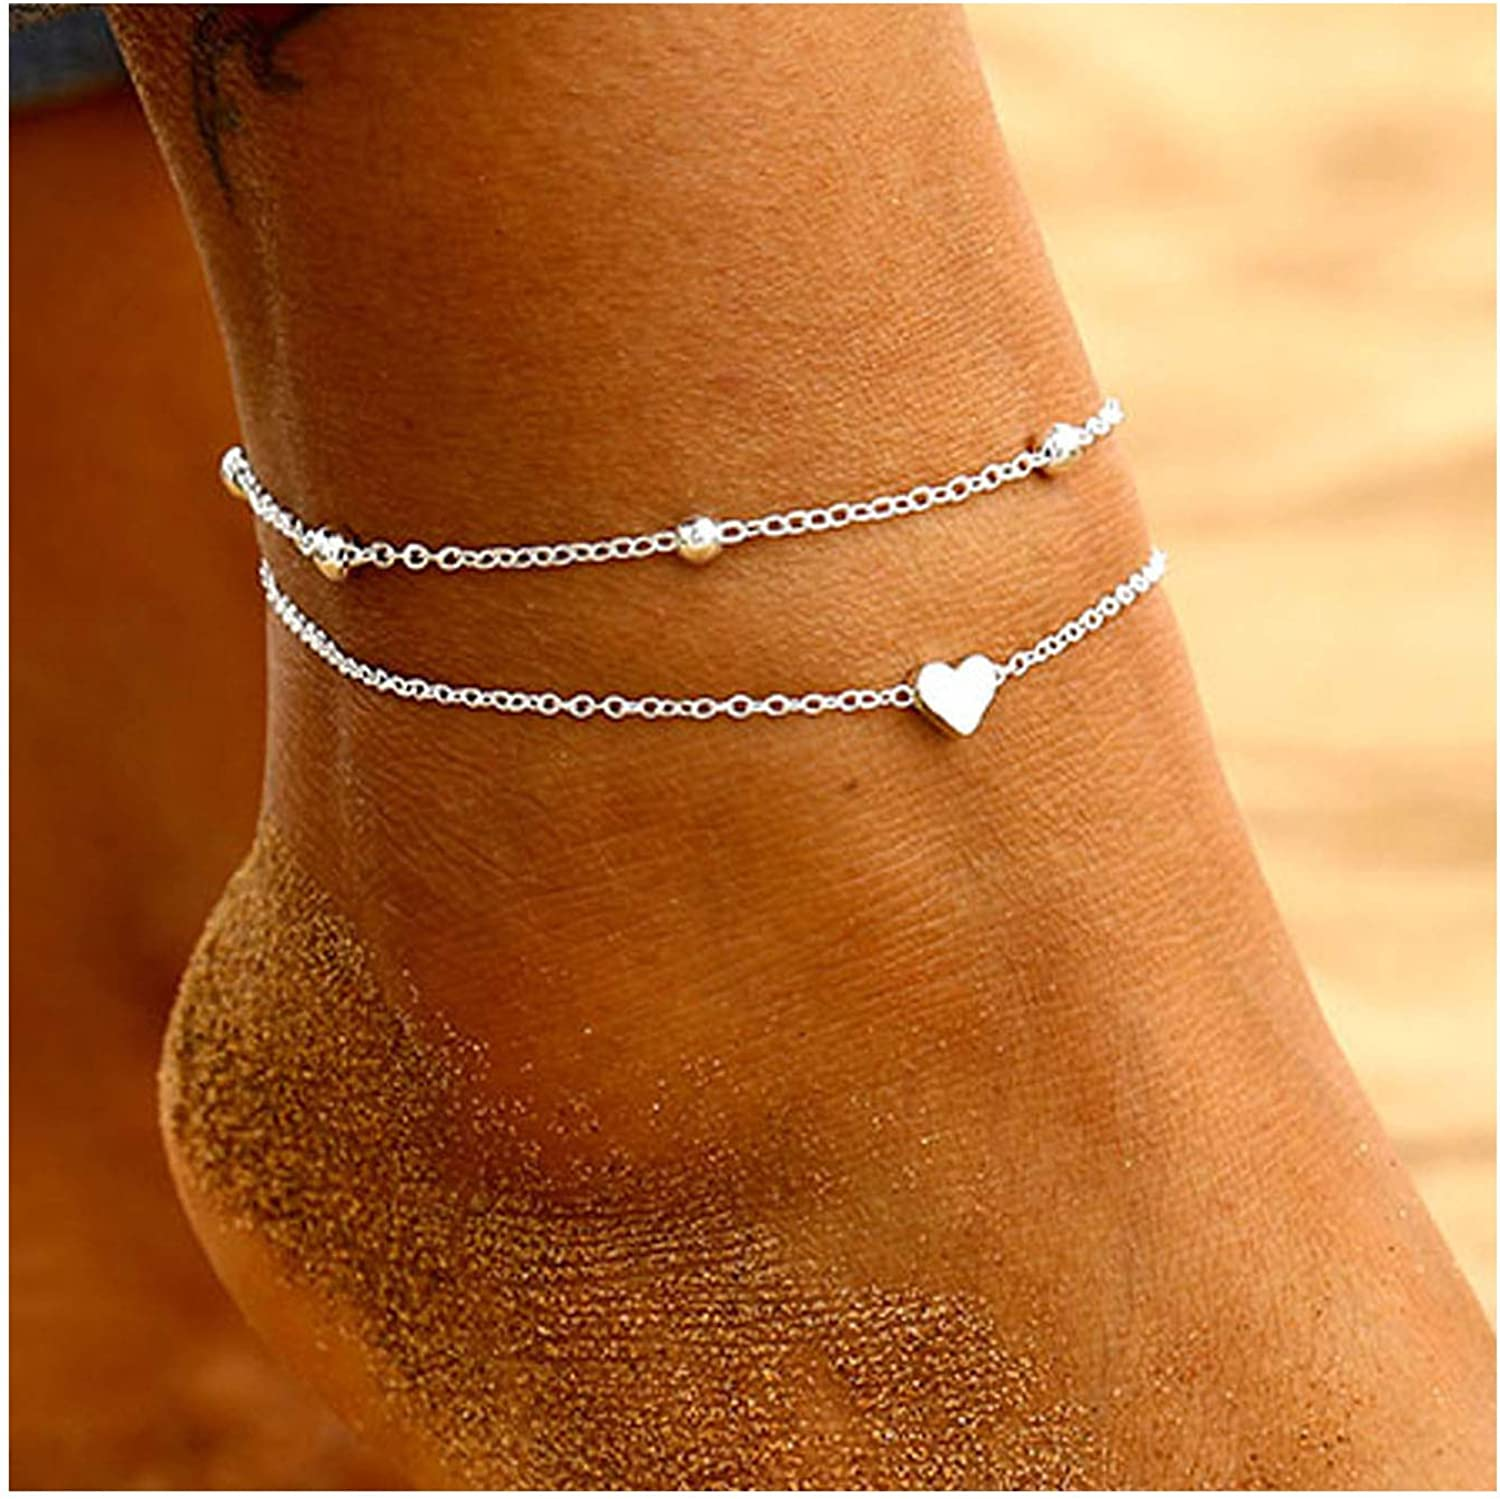 Osemind Beads Heart Anklets Silver Gold Ankle Bracelets for Women Foot Beach Jewelry